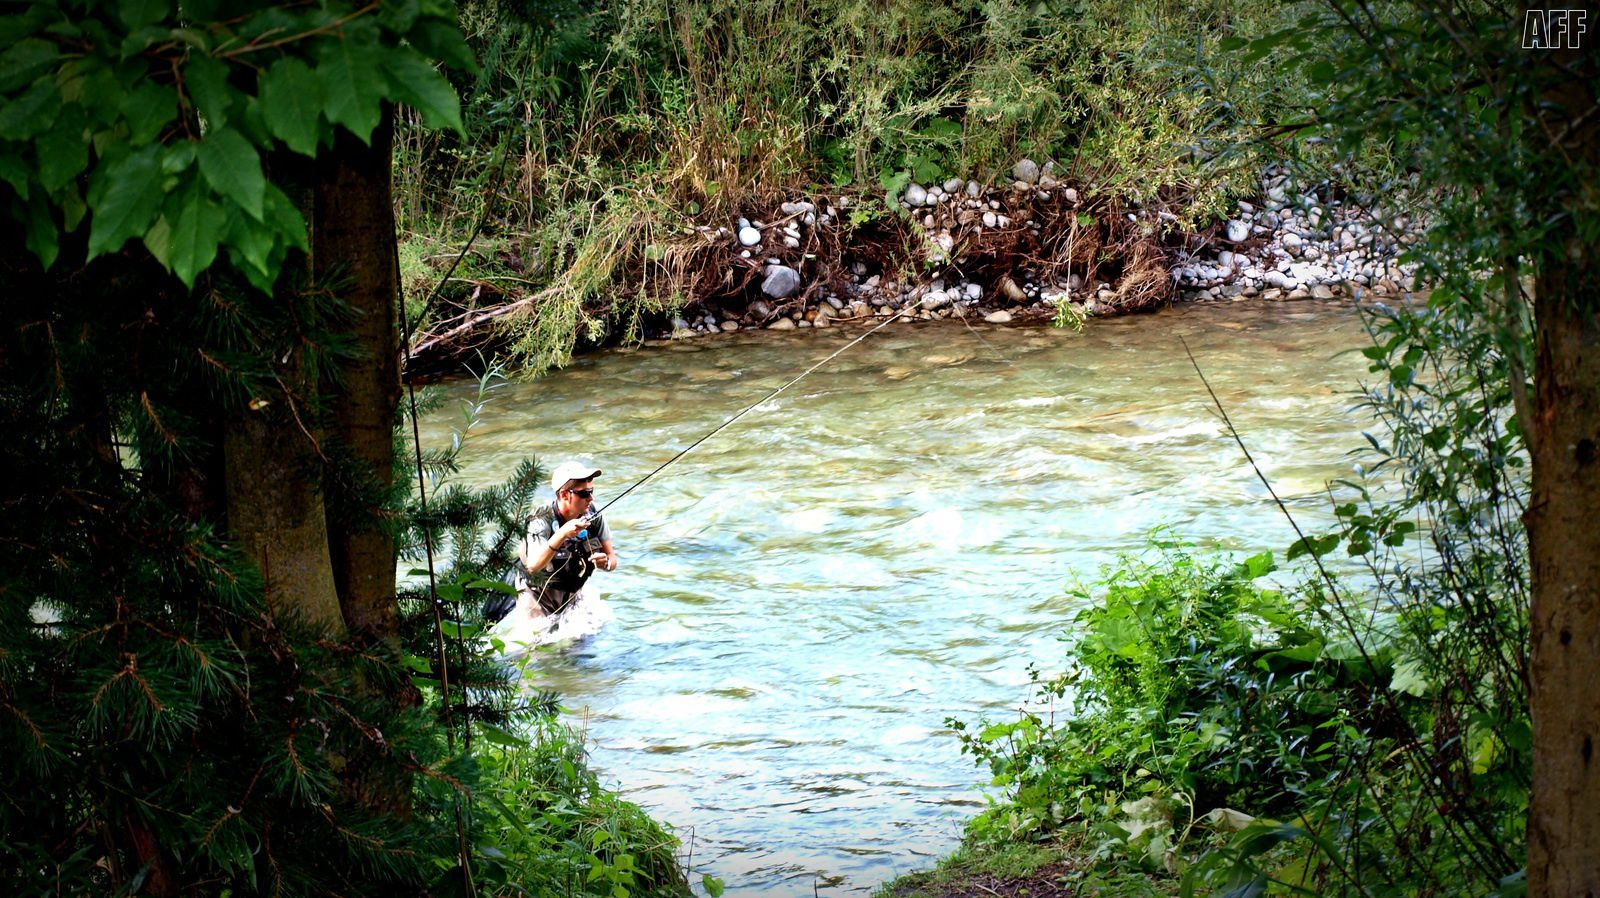 Primeros lances ya en competición en un ancho y fuerte correntón.. - First casts of the competition in a strong streams.